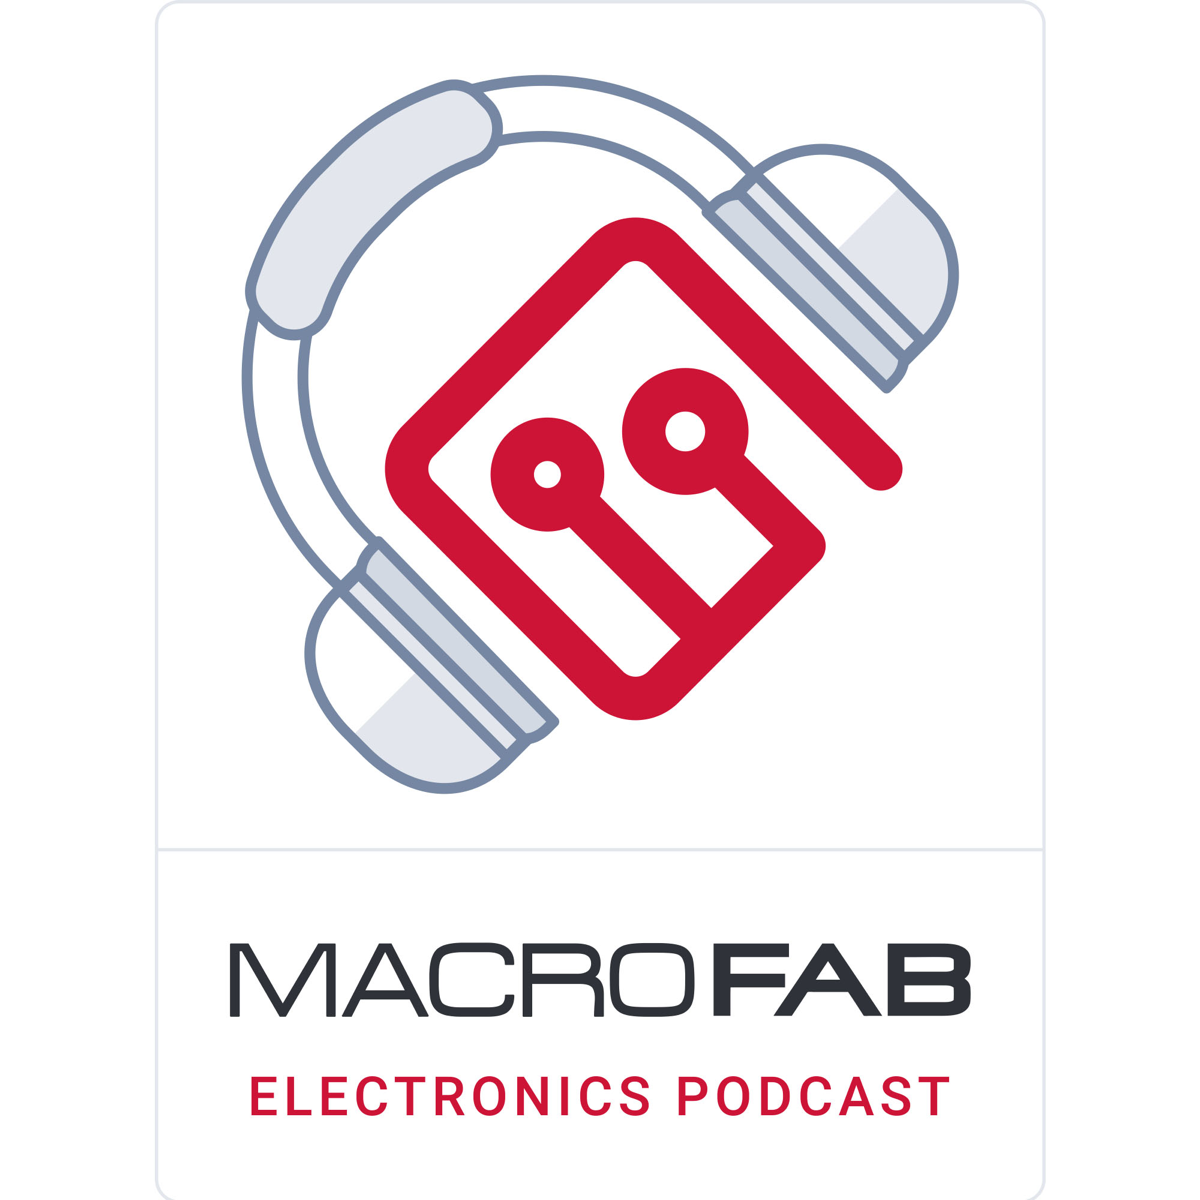 Best Episodes Of Macrofab Engineering Podcast On Podyssey Podcasts Iron Man Repulsor Fx Circuit V24 Light Sound Effects For Your